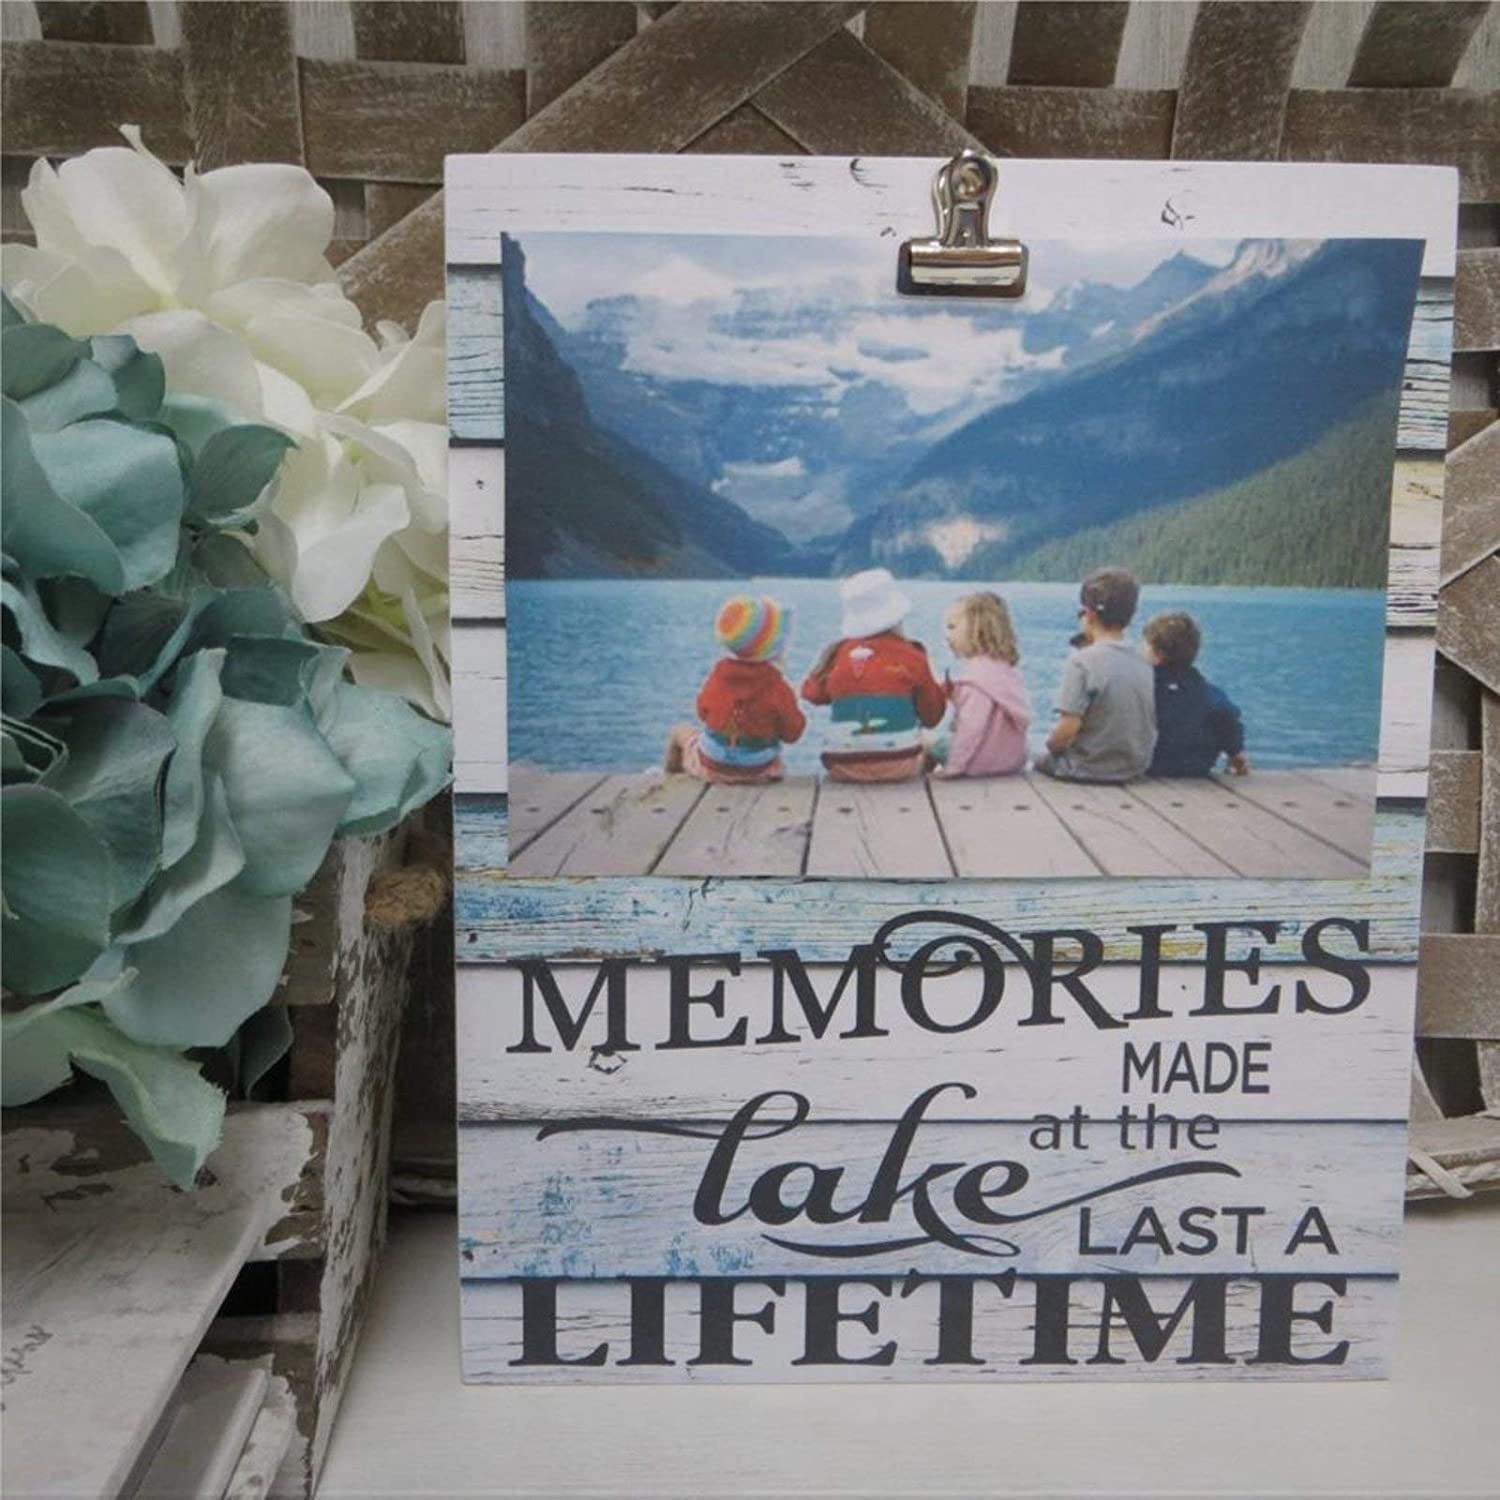 DONL9BAUER Memories Made at The Lake Last A Lifetime Framed Wooden Sign,Lake House Picture Frame Wood Wall Decor Sign, Farmhouse Wooden Plaque Art for Home,Gardens, Porch, Gallery Wall, Coffee Shops.